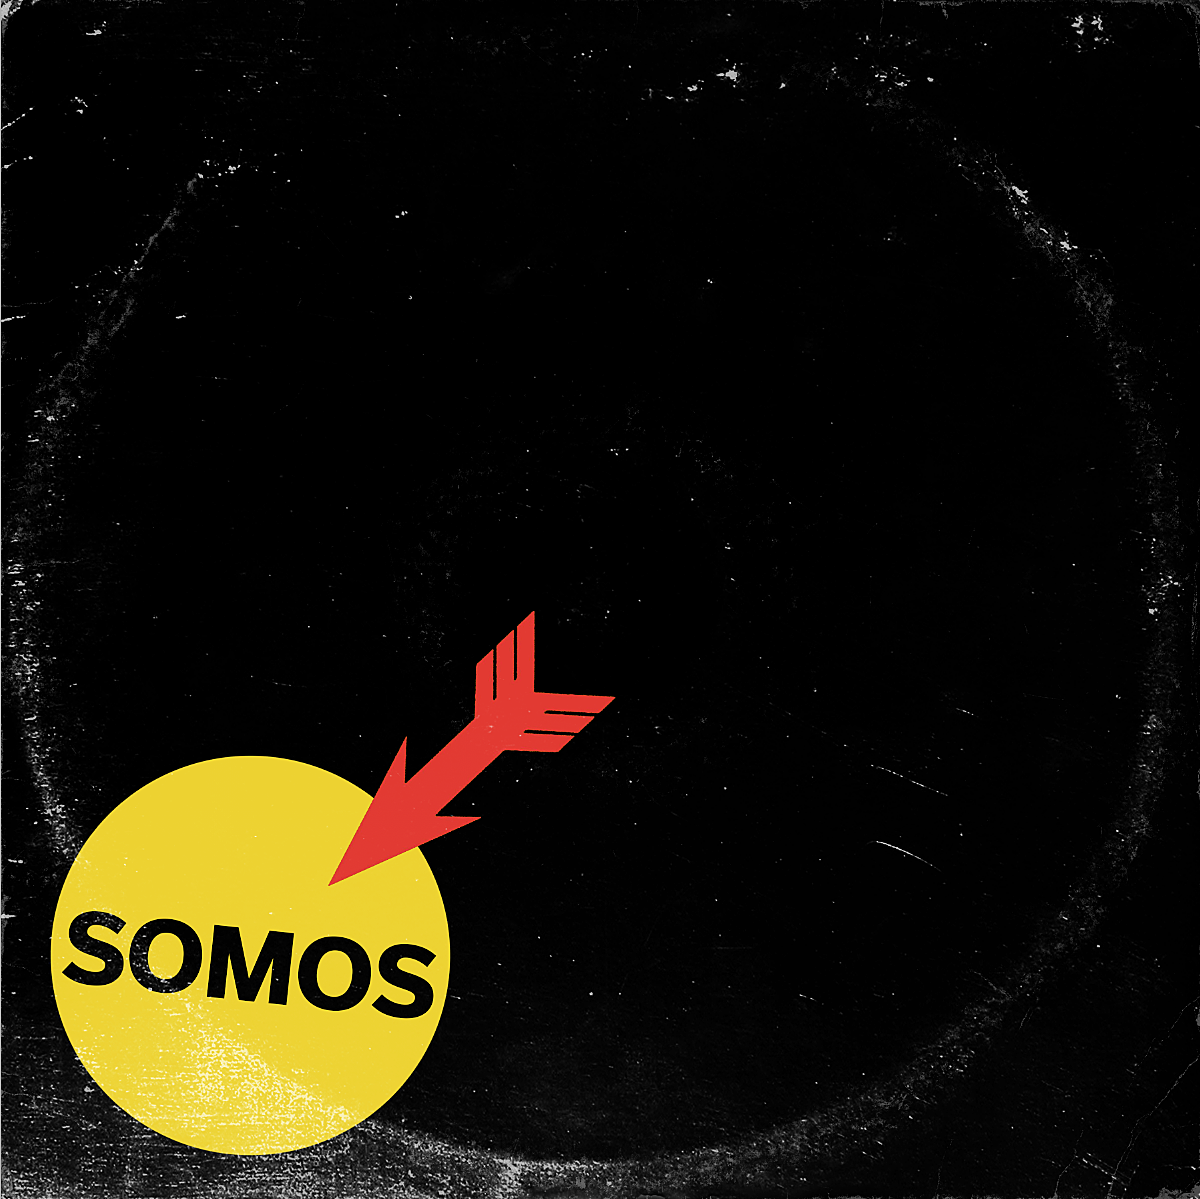 Somos release new album early for one week only